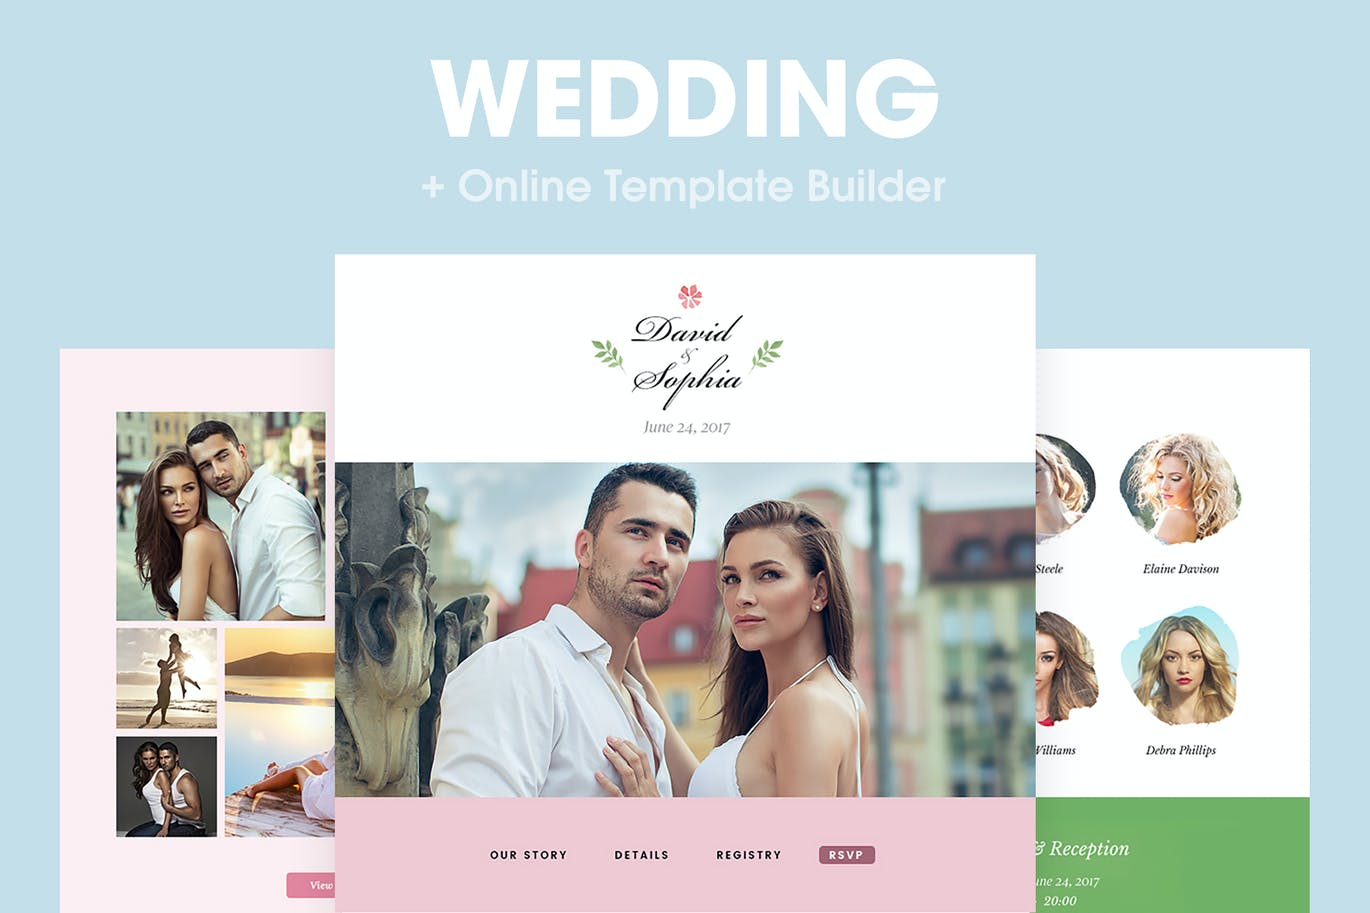 Wedding - Responsive Email Template by HyperPix on Envato Elements